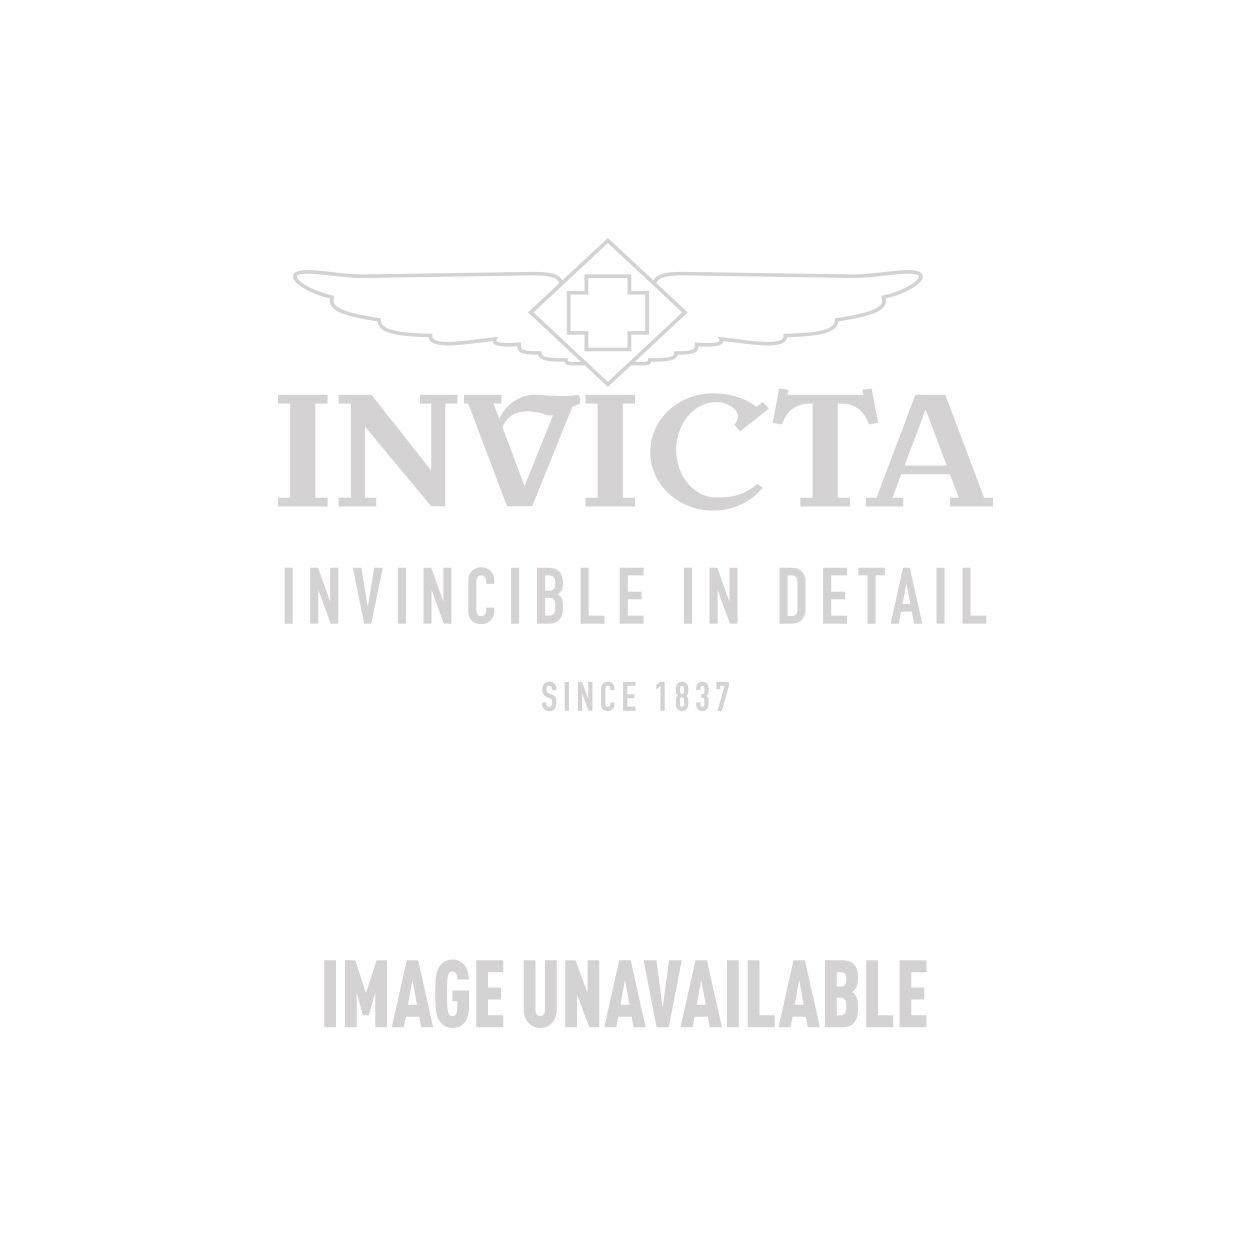 Invicta Specialty Swiss Movement Quartz Watch - Stainless Steel case Stainless Steel band - Model 6620